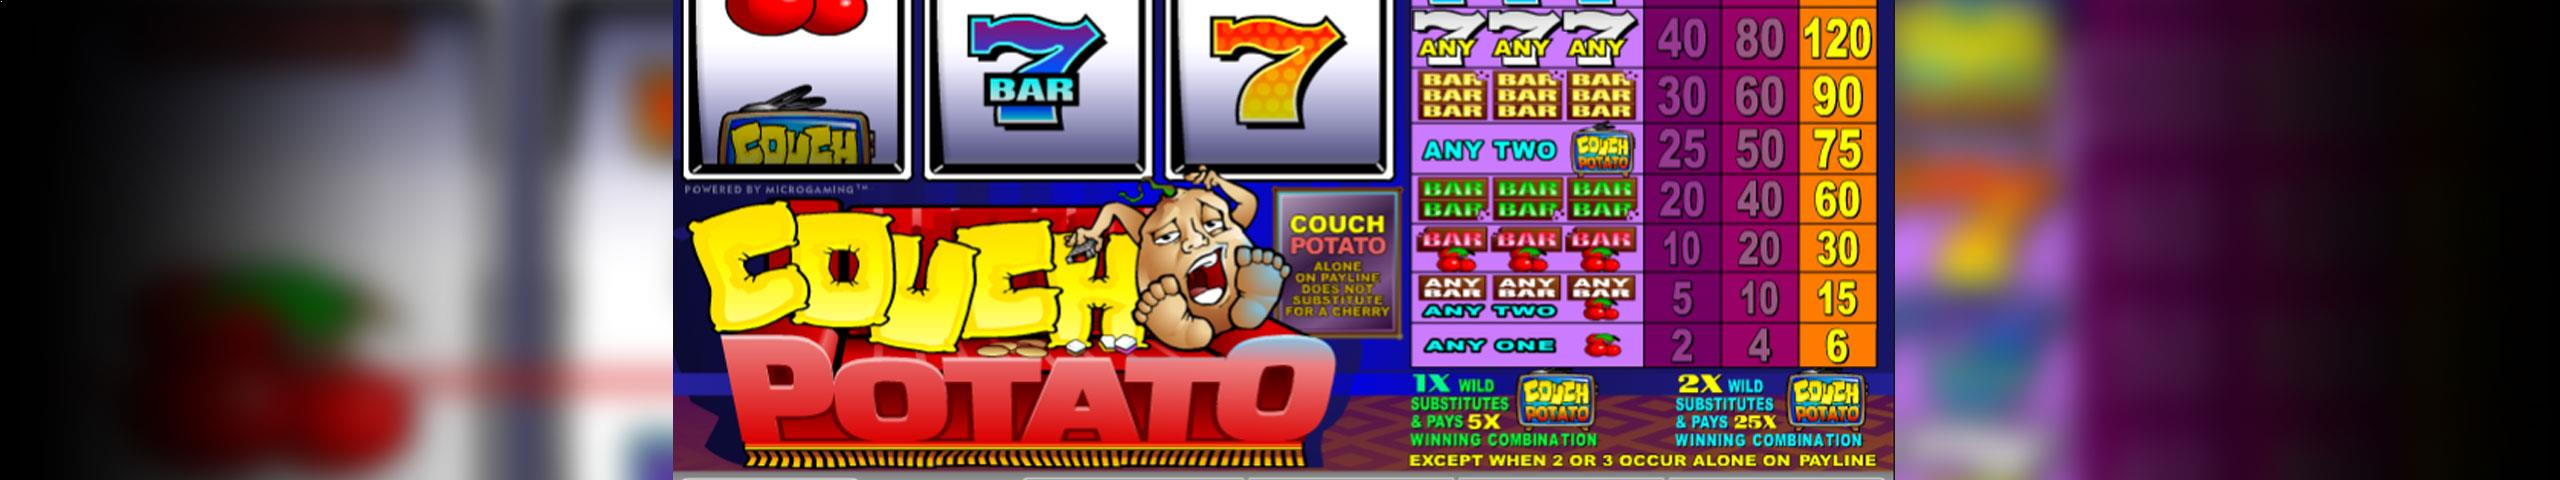 Couch Potato Microgaming jocuri slot slider